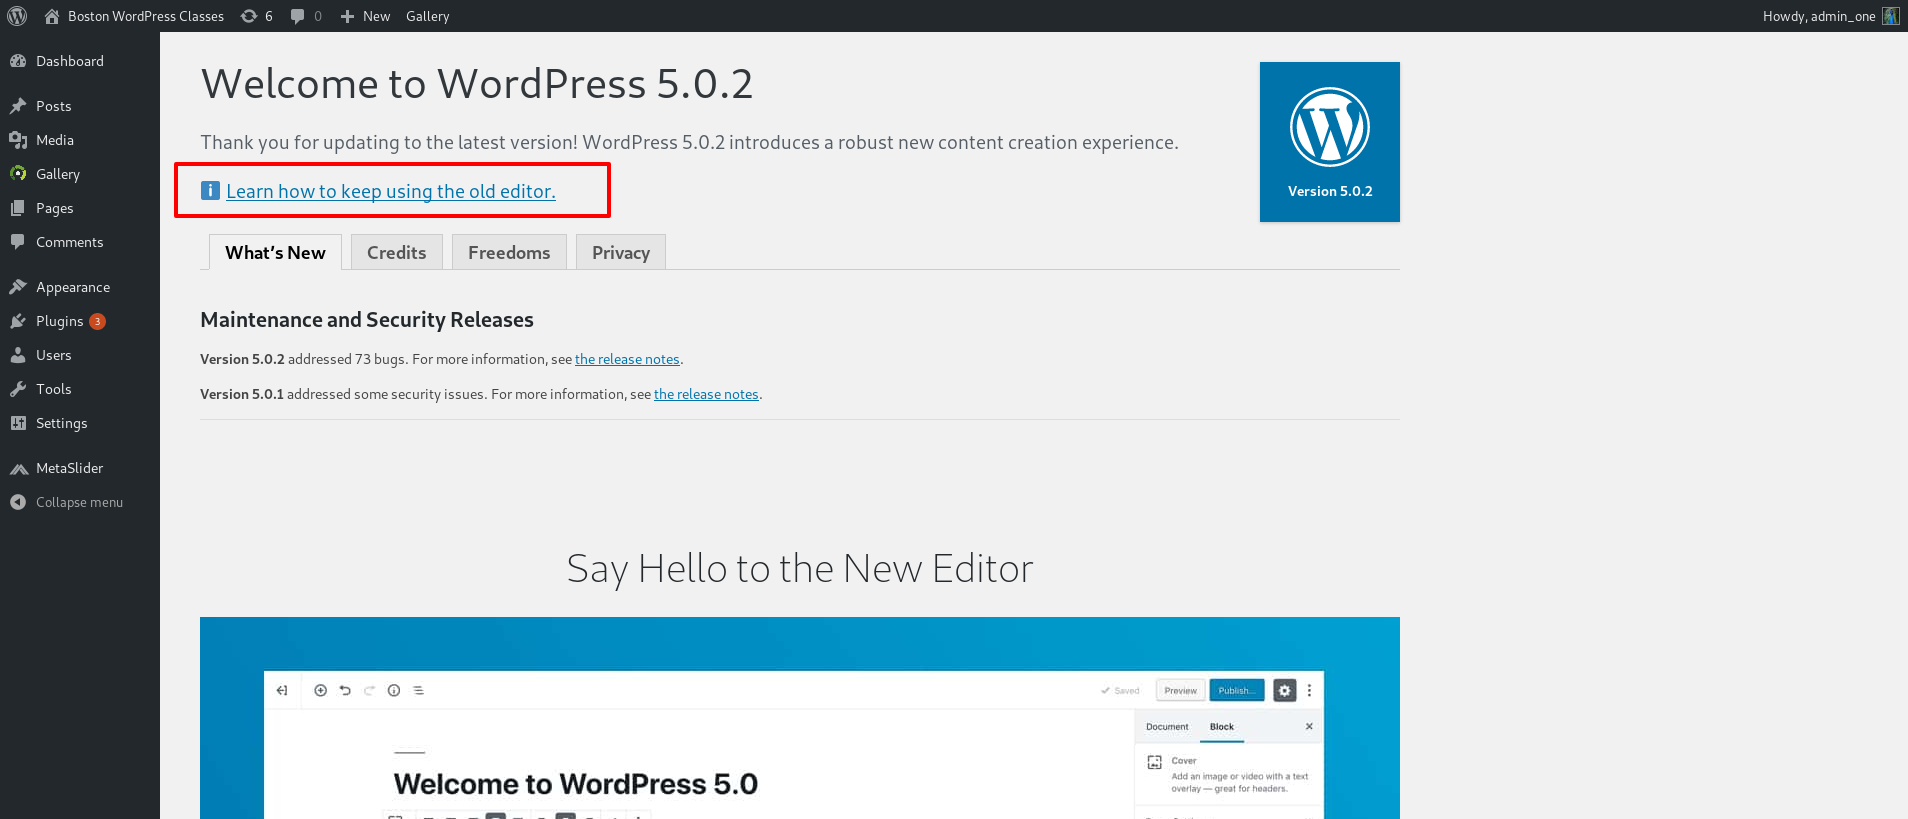 Top of WordpRESS 5 WELCOME SCREEN